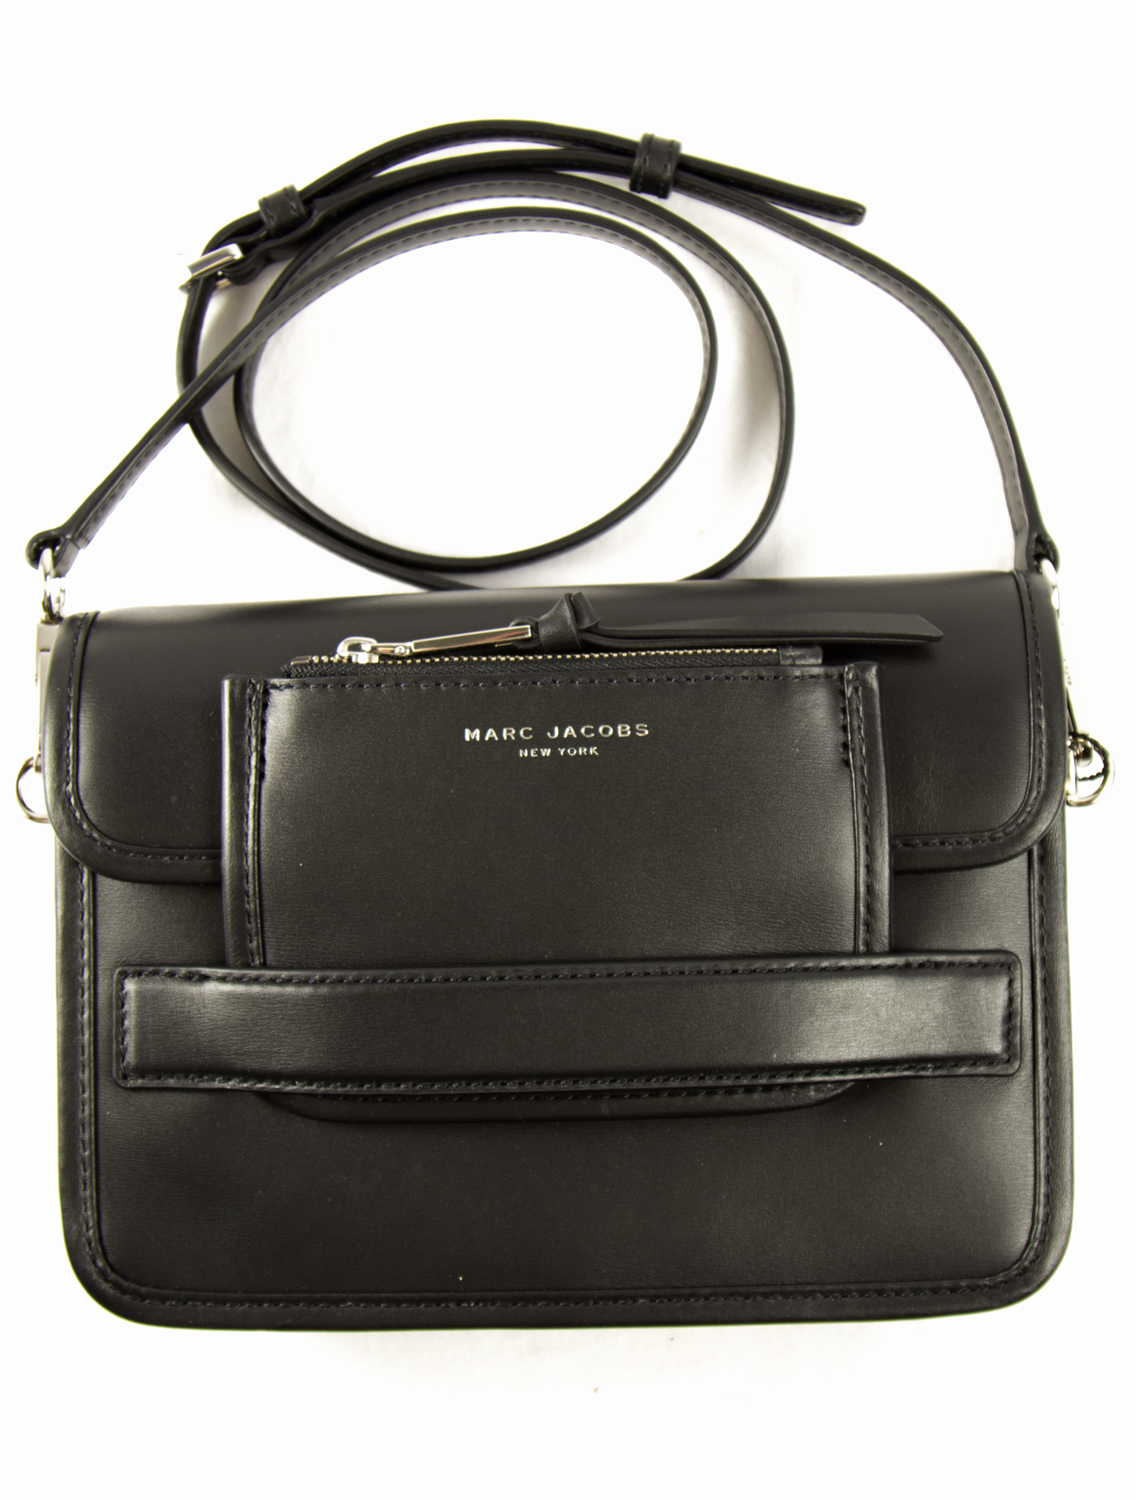 Cheap Sale Fashionable Leather bag Marc Jacobs Finishline kDo9PkiwP